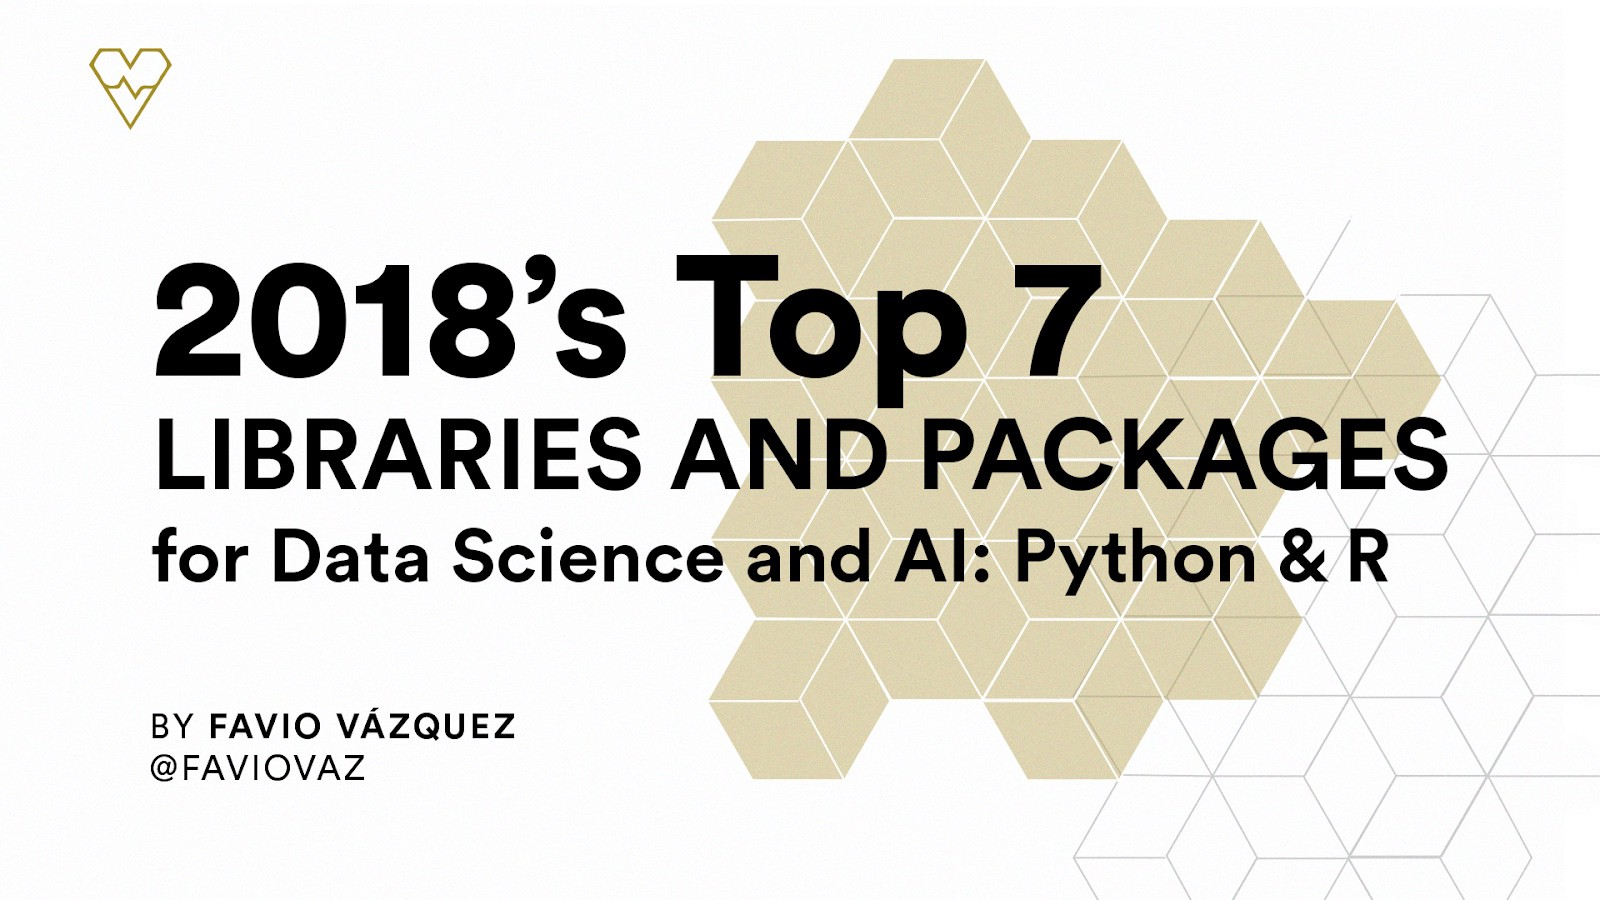 2018's Top 7 Libraries and Packages for Data Science and AI: Python & R